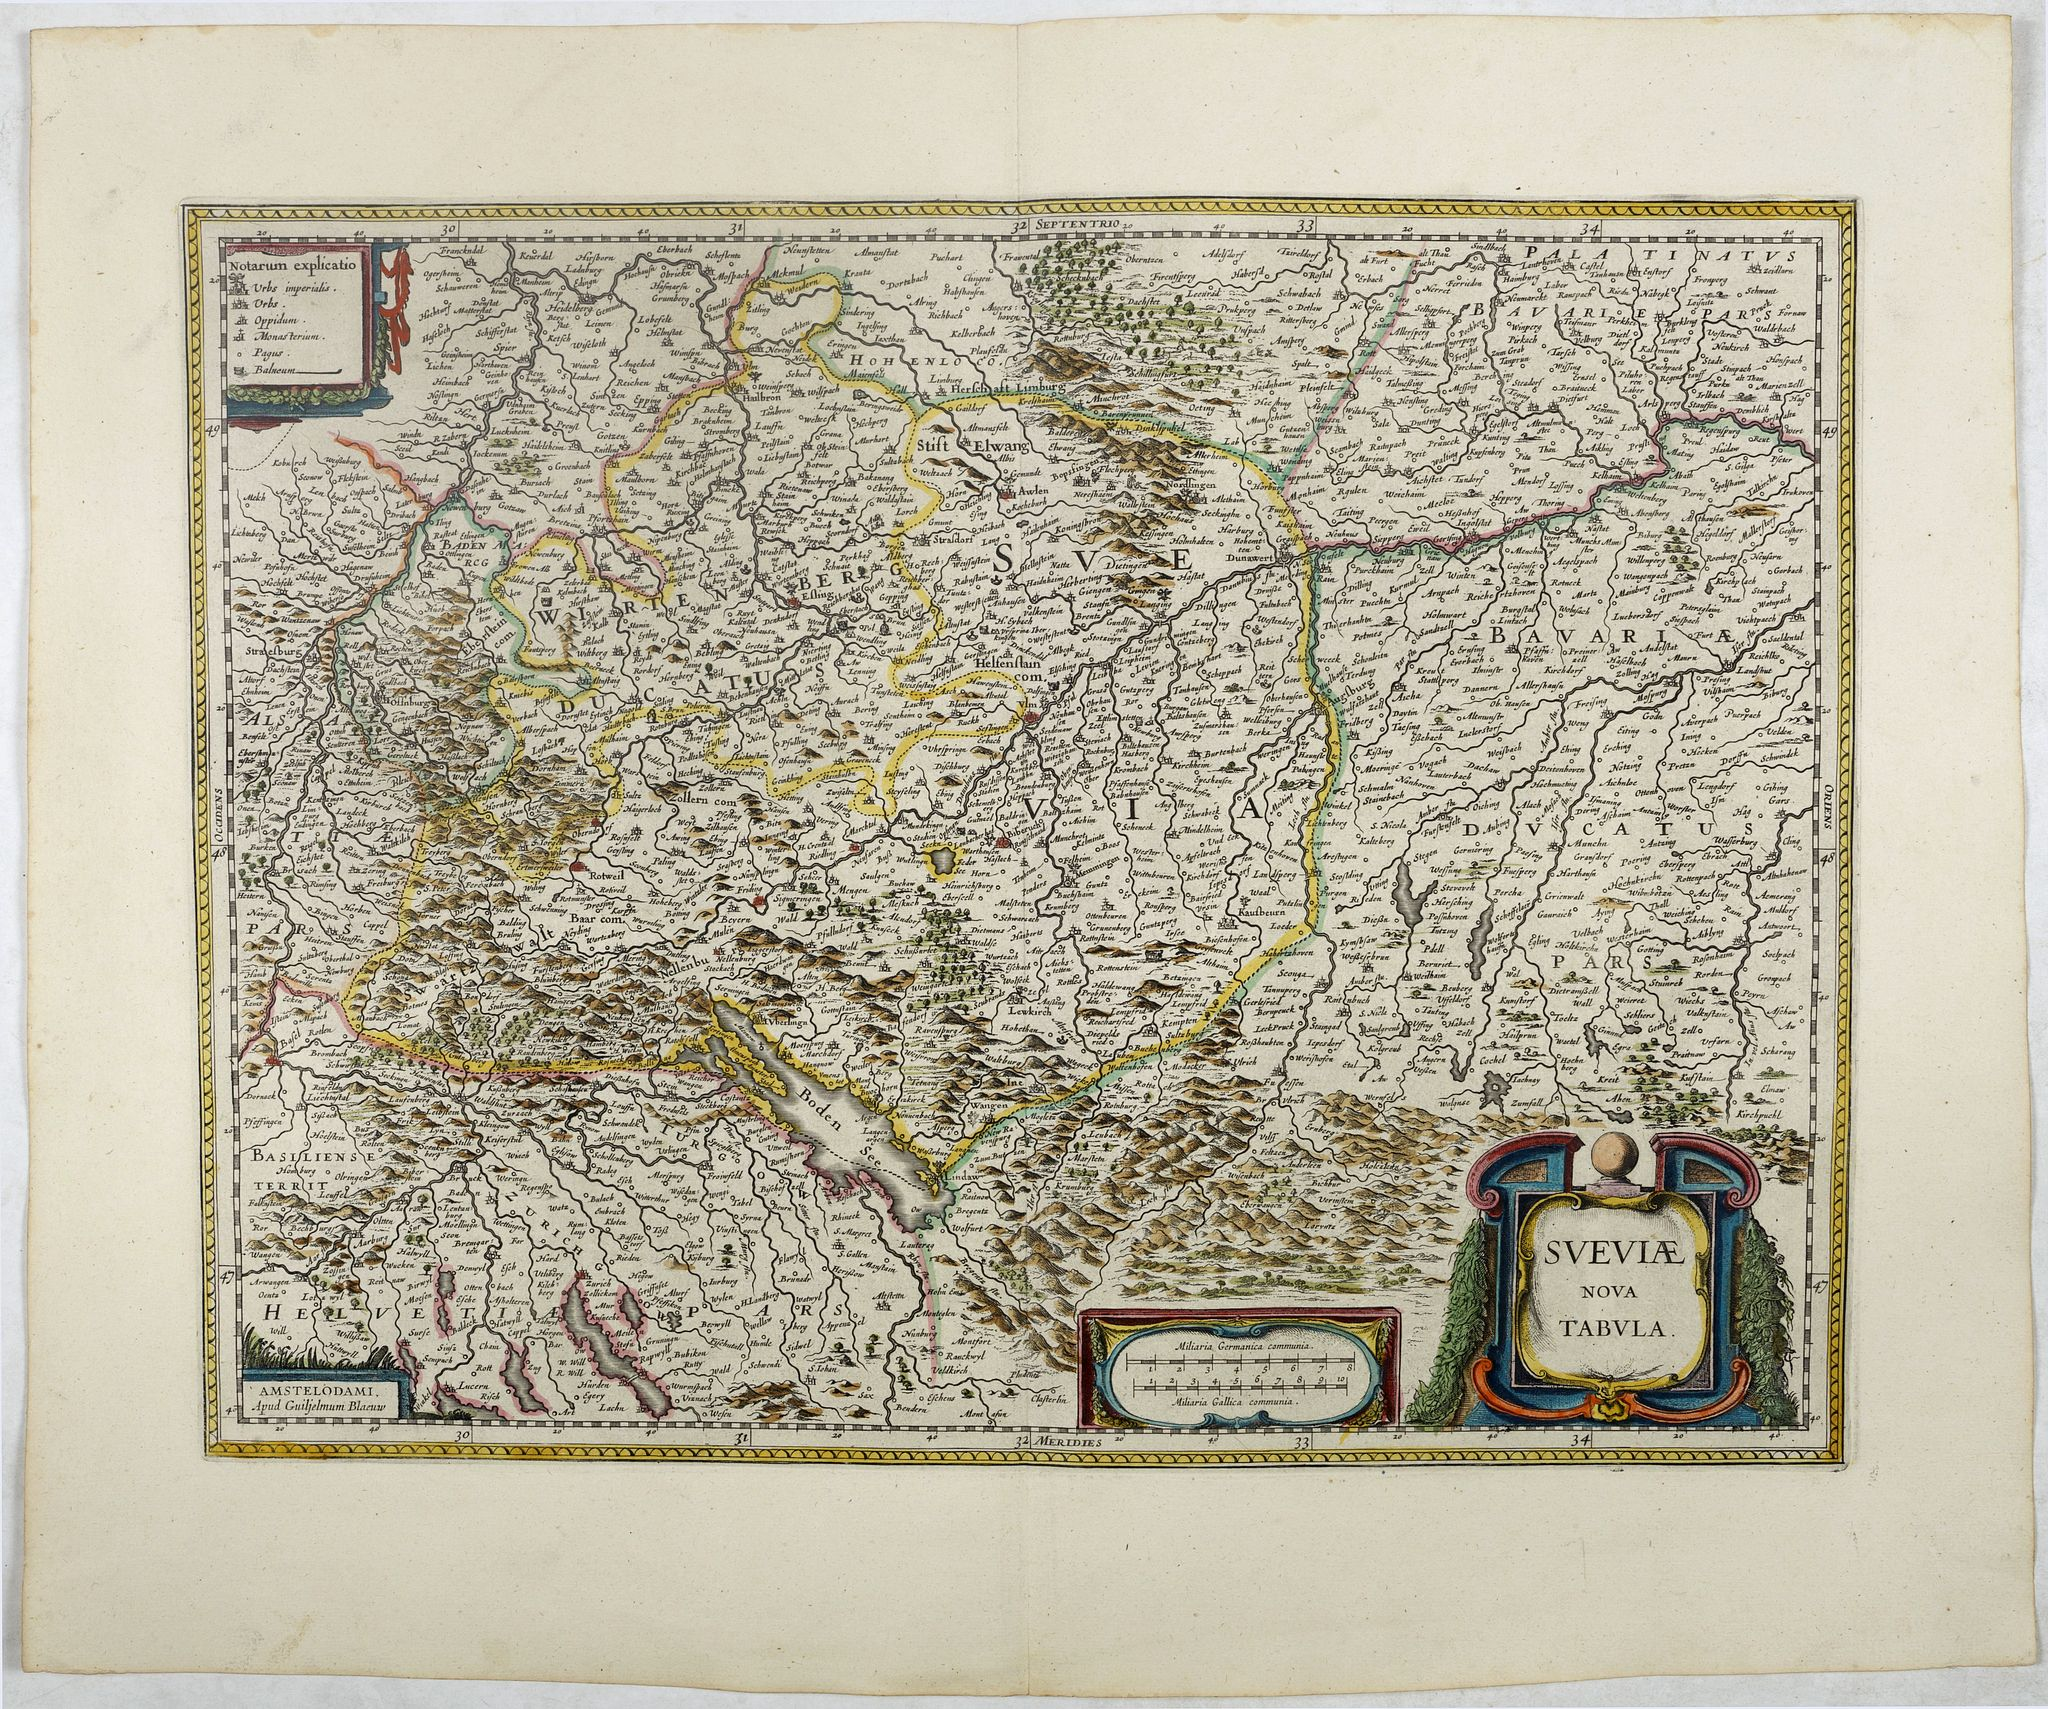 BLAEU, W.,  Sueviae nova tabula., antique map, old maps